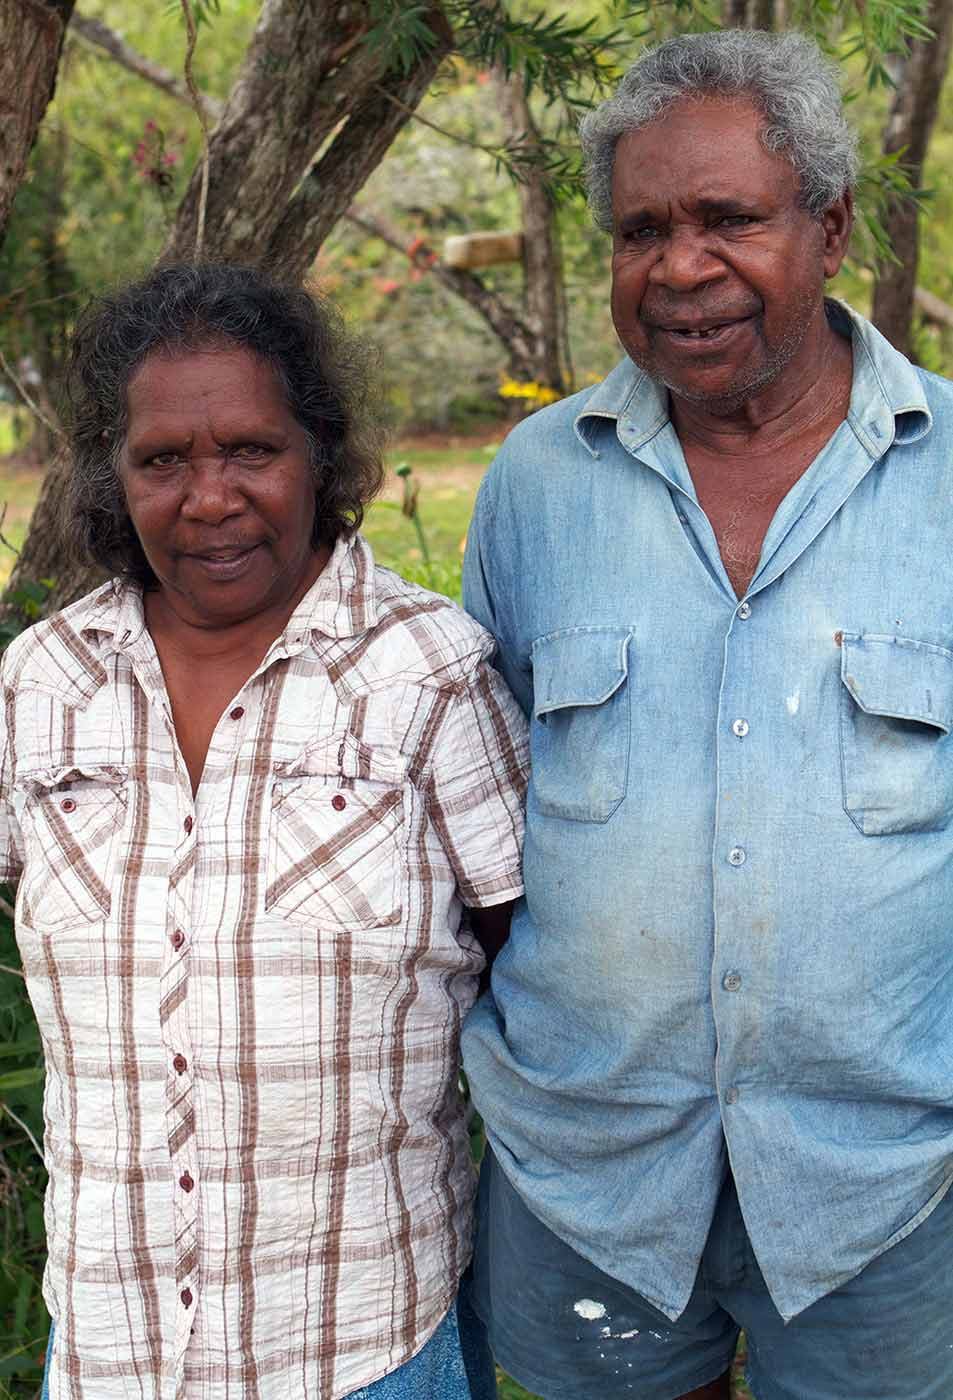 Portrait of a woman and a man of Indigenous Australians background. - click to view larger image